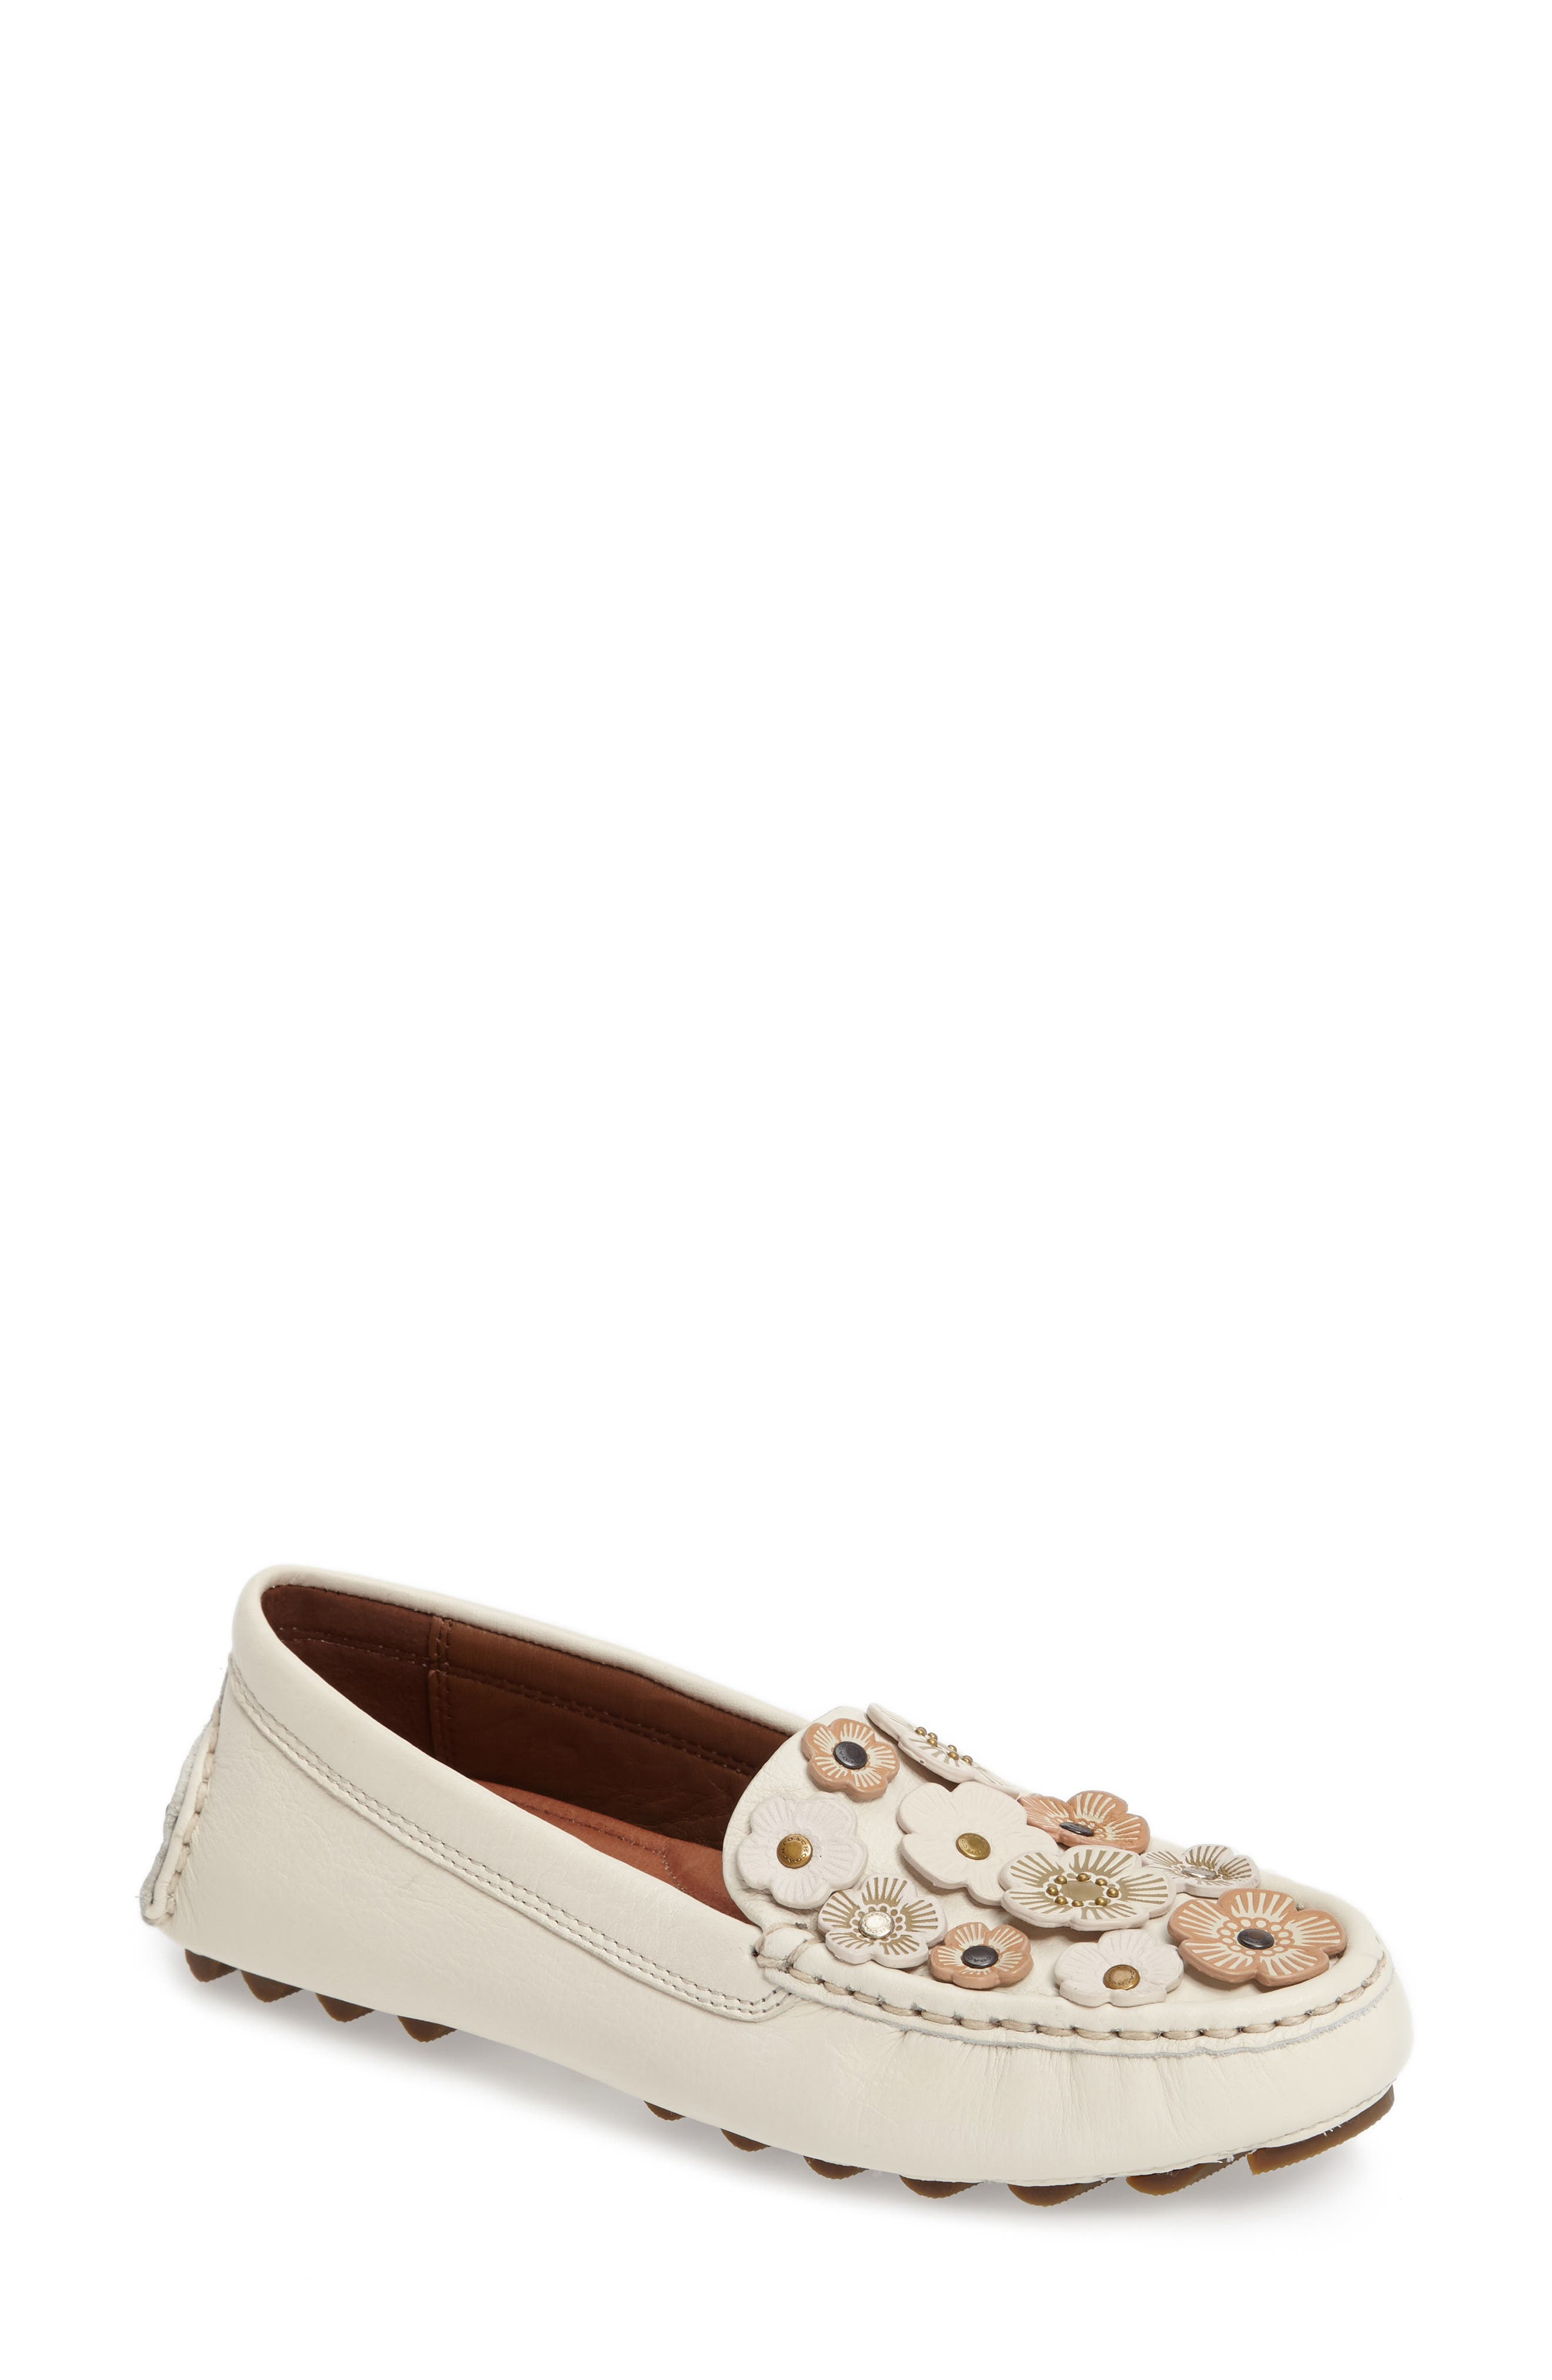 Tea Rose Driving Loafer,                             Main thumbnail 1, color,